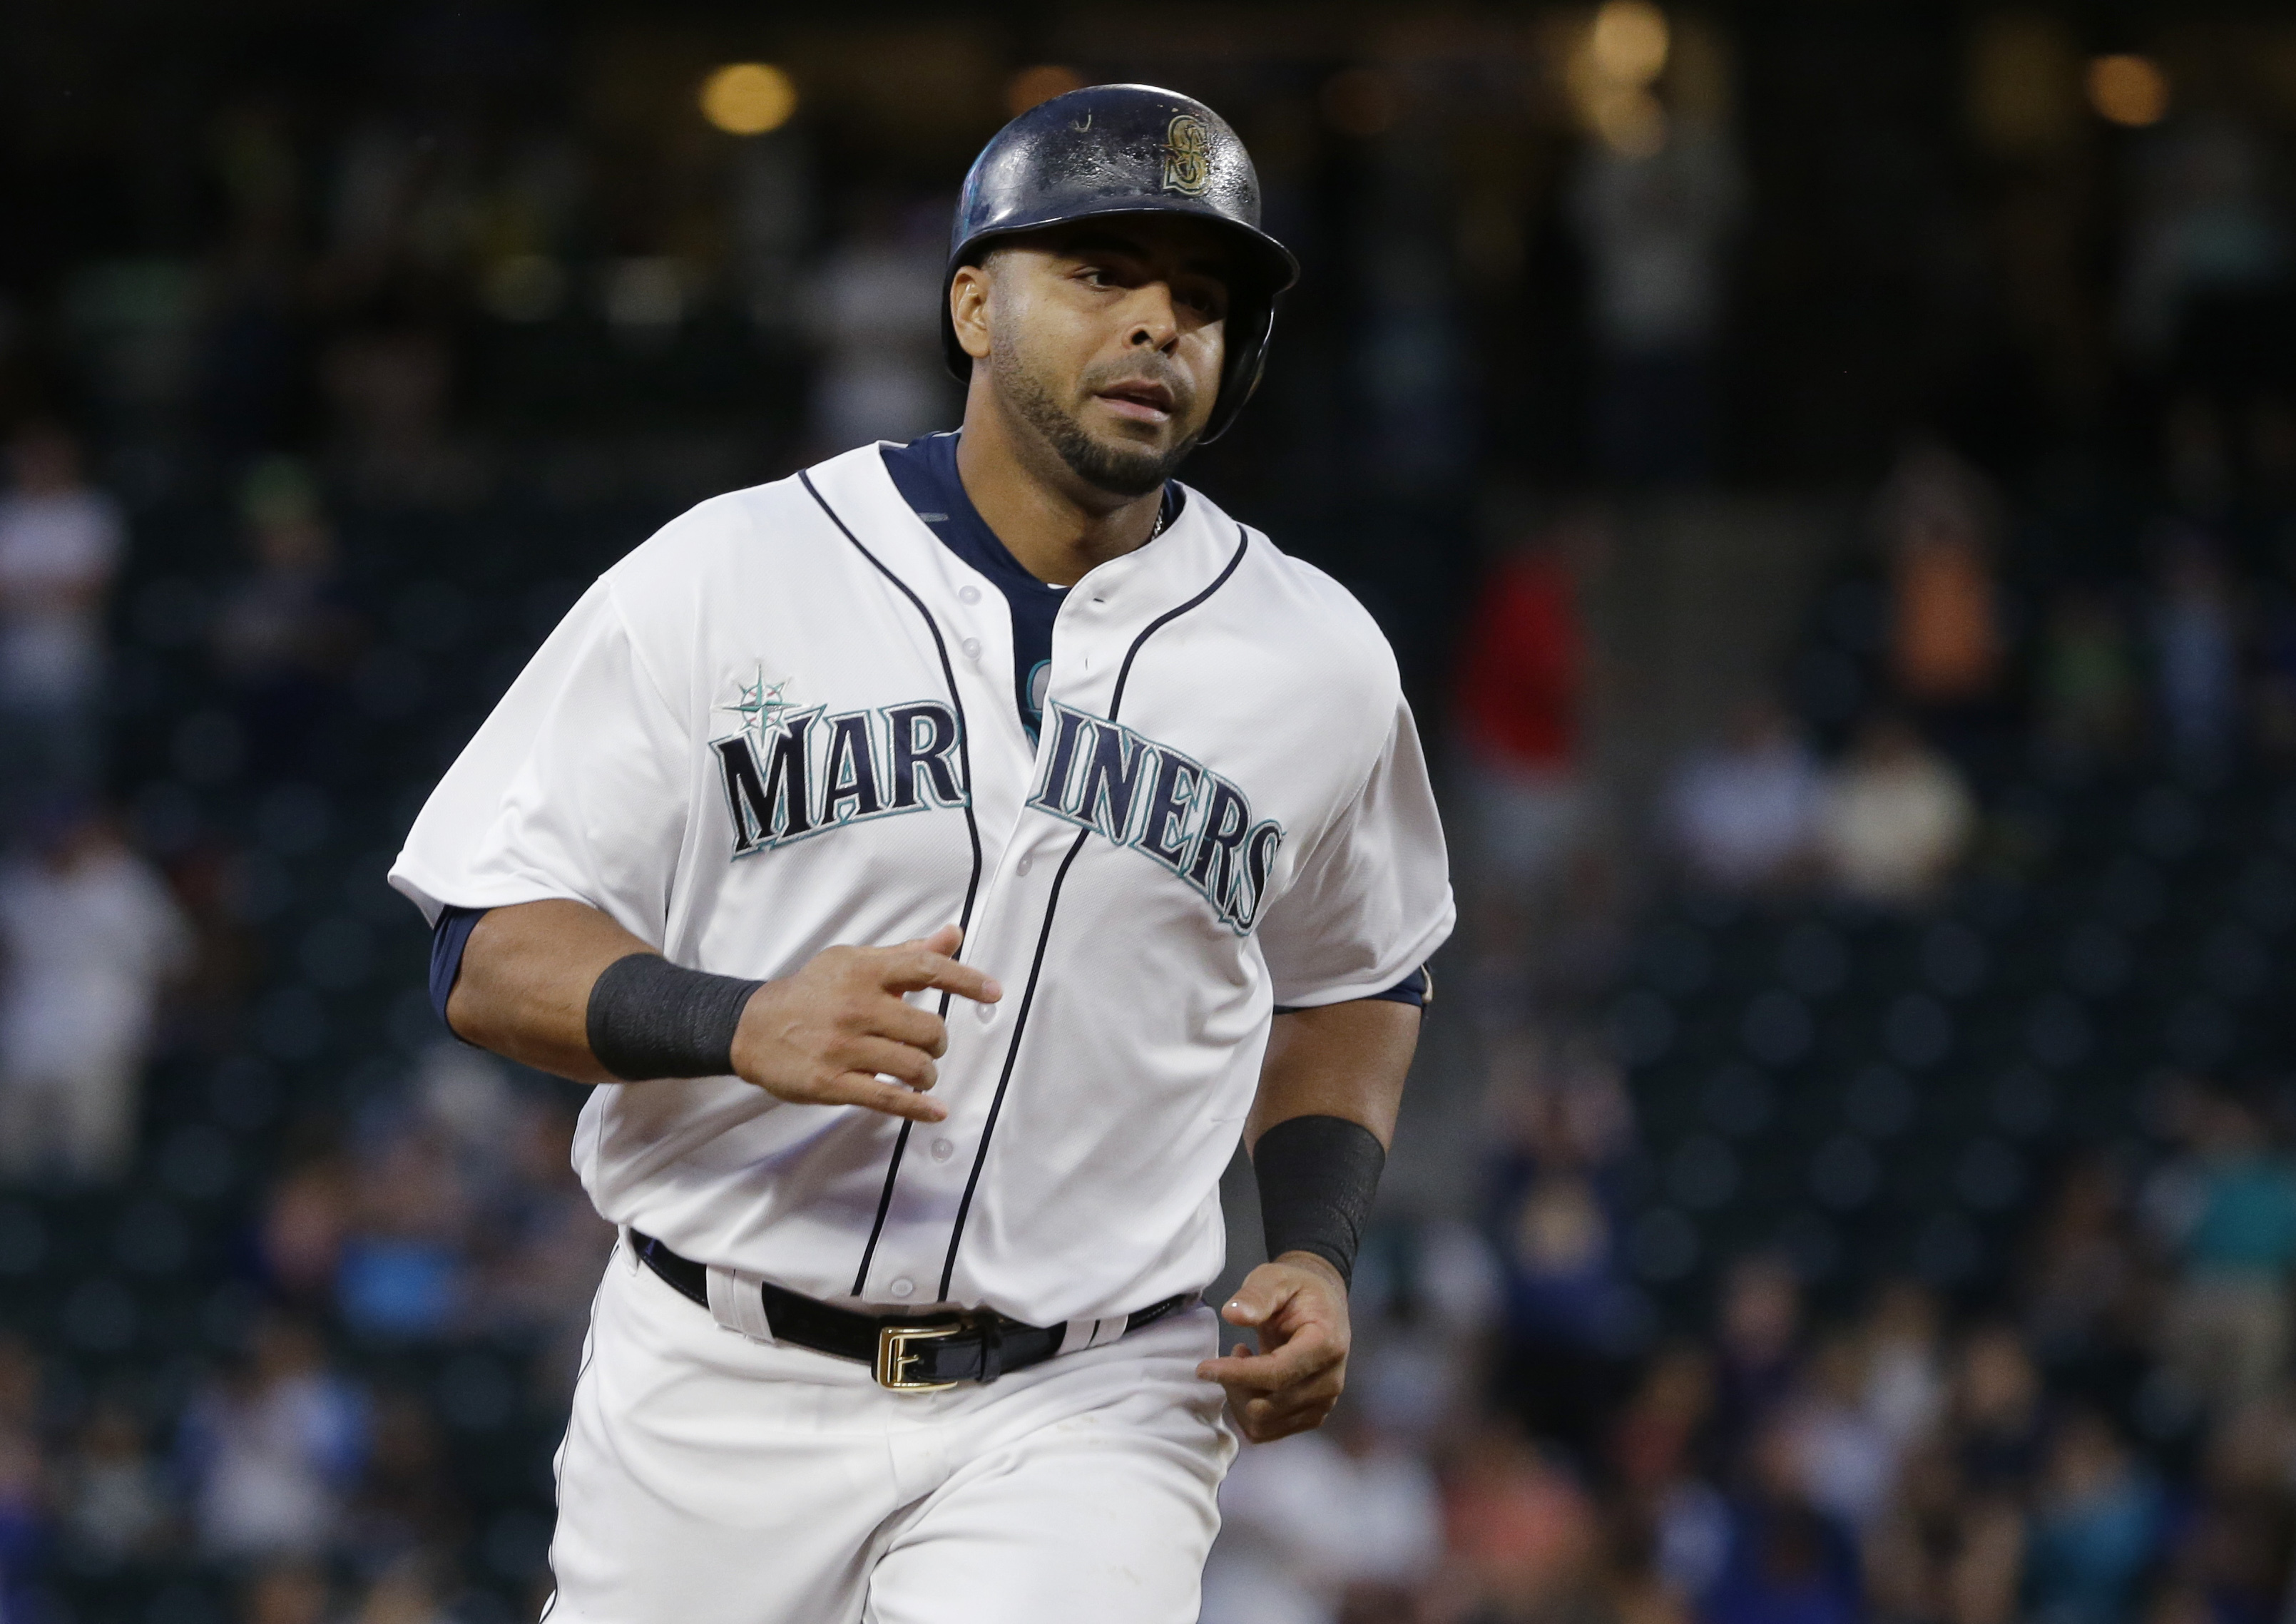 Seattle Mariners' Nelson Cruz rounds the bases after hitting a solo home run against the Cleveland Indians during the fifth inning of a baseball game, Tuesday, June 7, 2016, in Seattle. It was Cruz's second home run of the game. (AP Photo/Ted S. Warren)